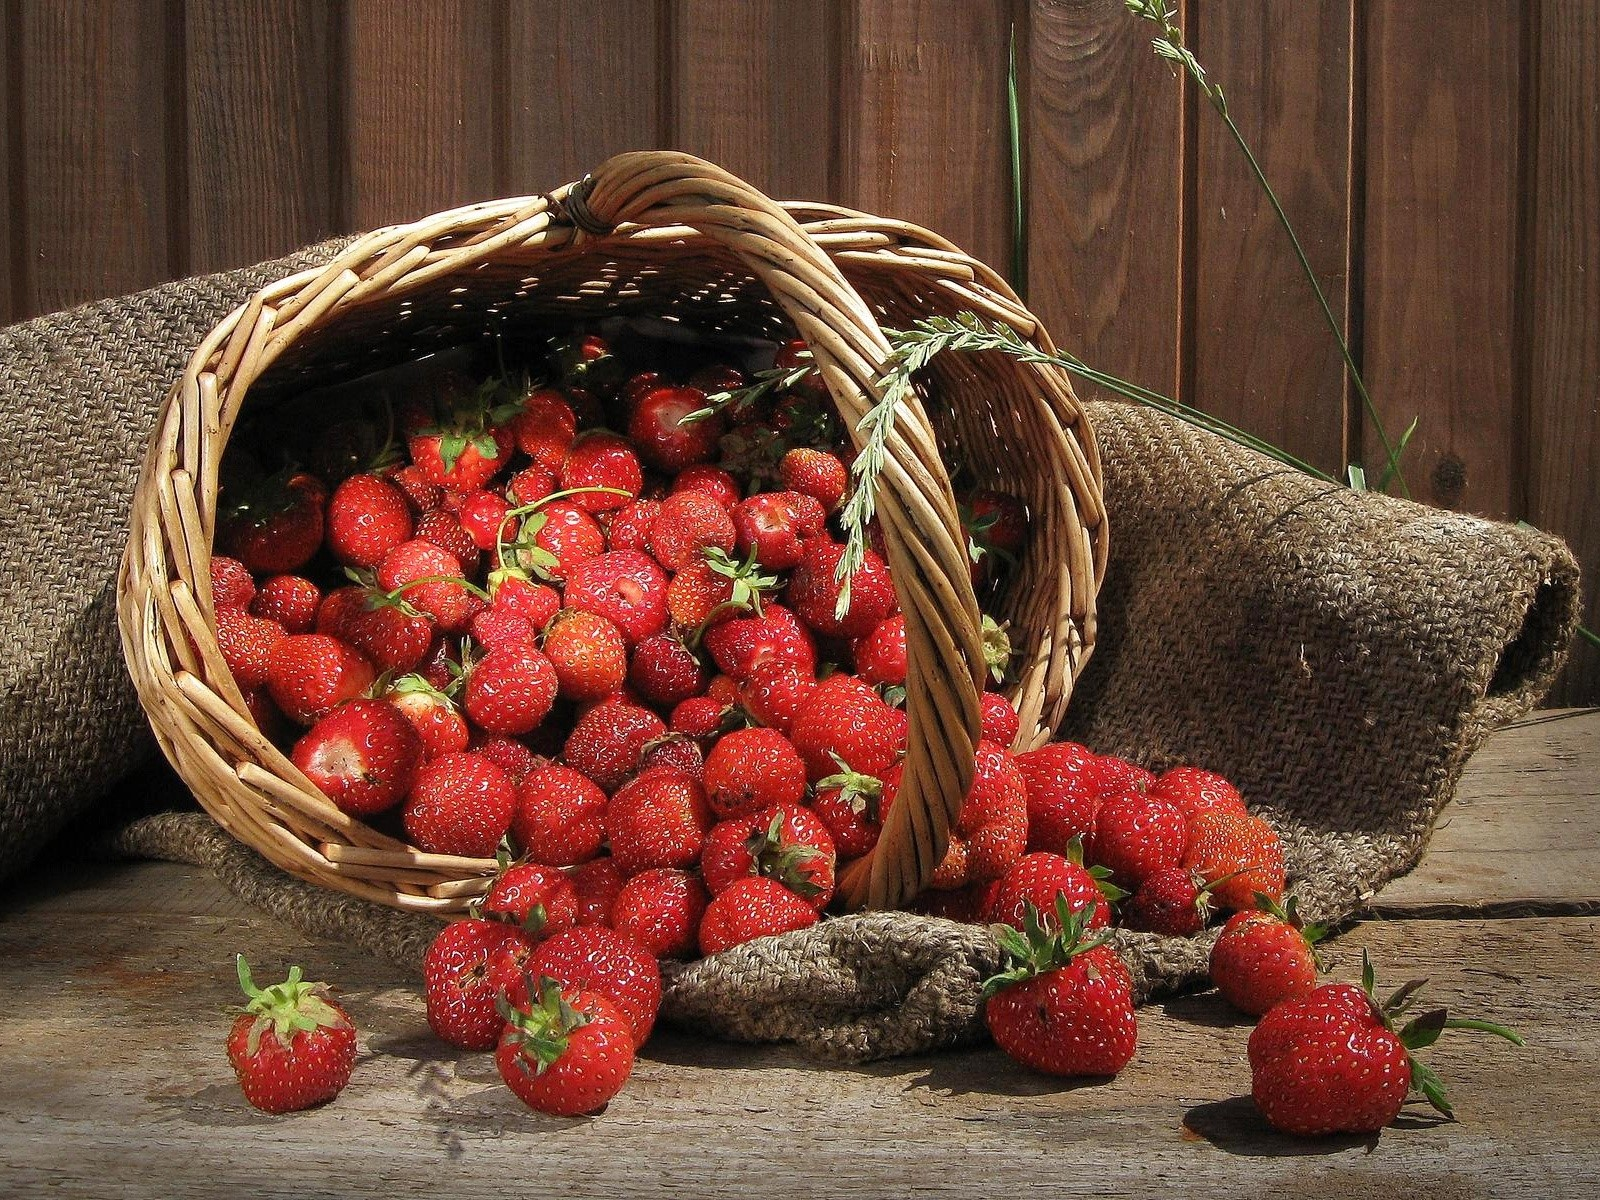 Wallpaper Strawberries in a basket